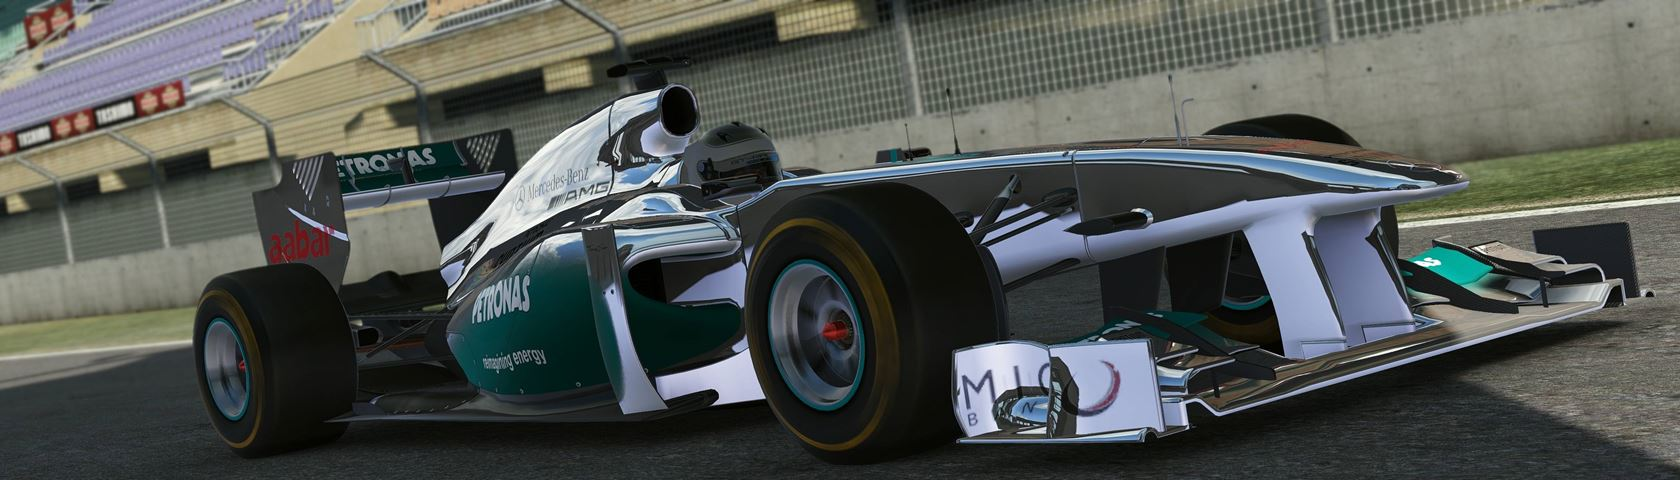 2013 Mercedes F1 Car in Project CARS